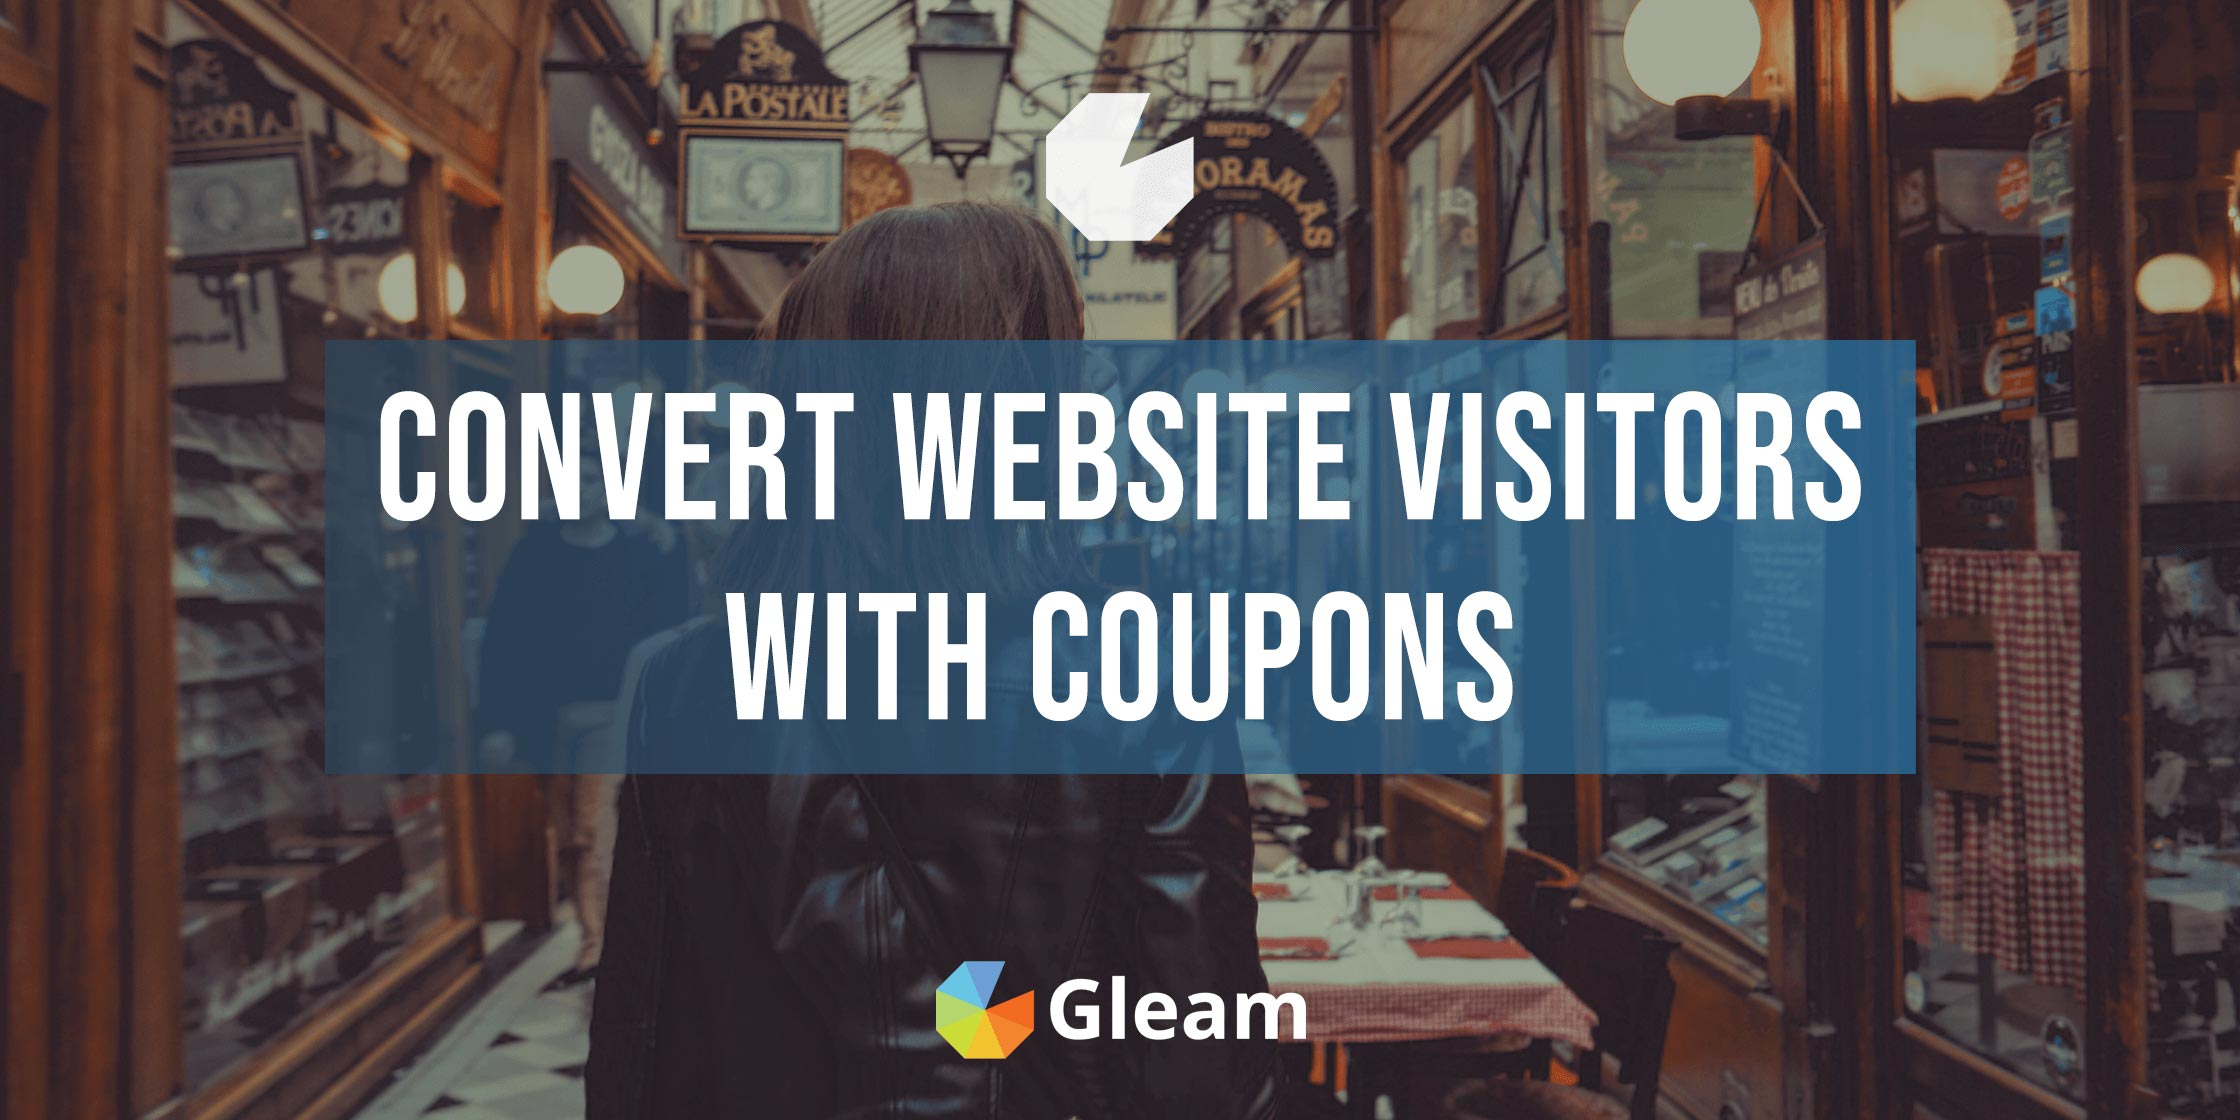 Using Coupons to Convert E-Commerce Visitors Into Customers